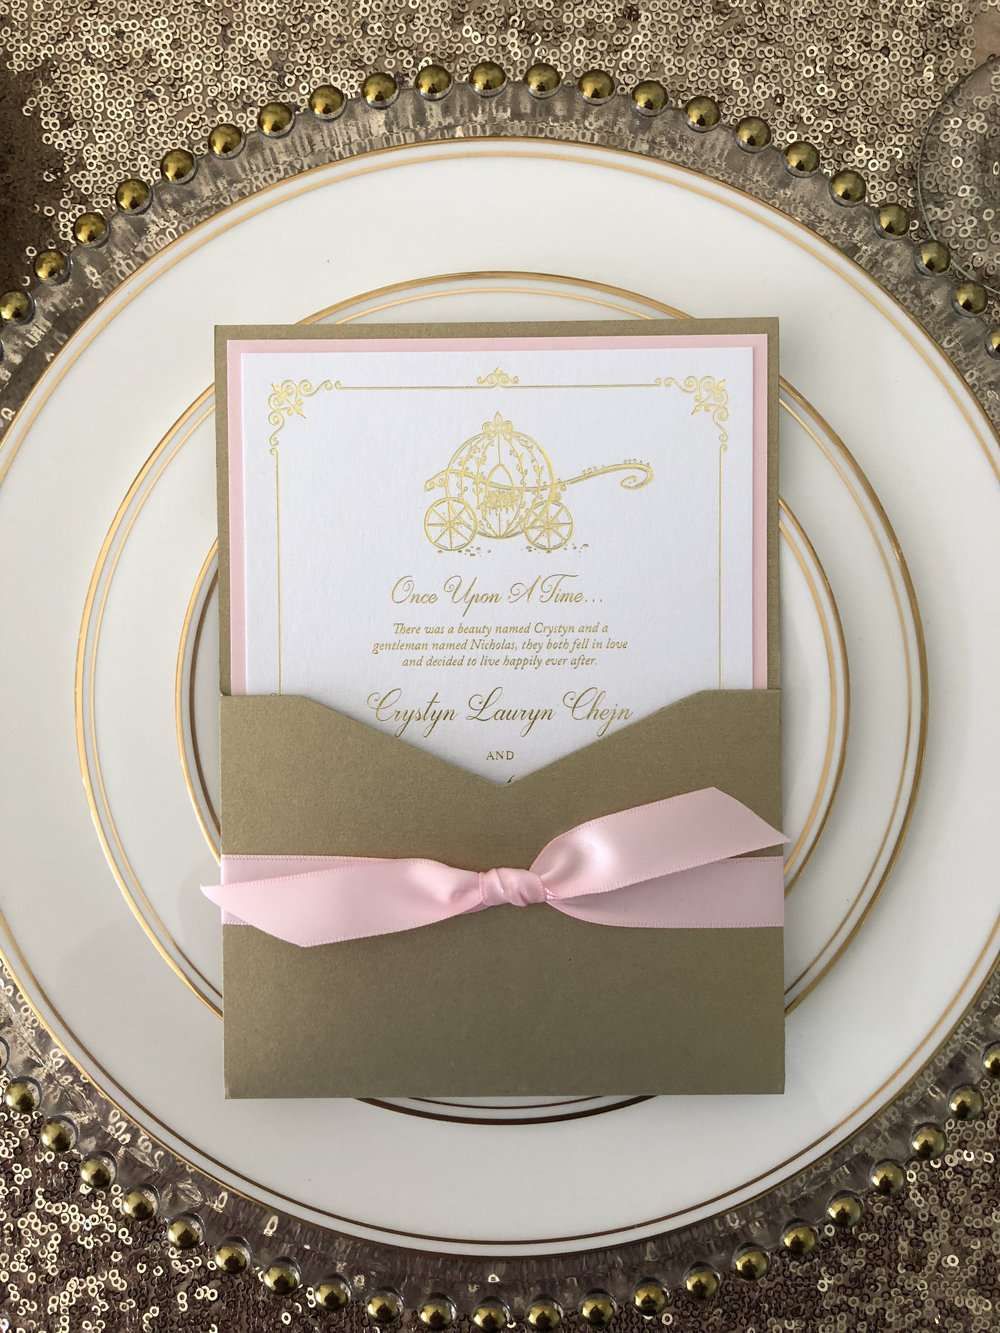 Invitation-Architects-Paris-Cinderalla-Fairtytale-Gold-Foil-Wedding-Invitation-Pocket.jpg